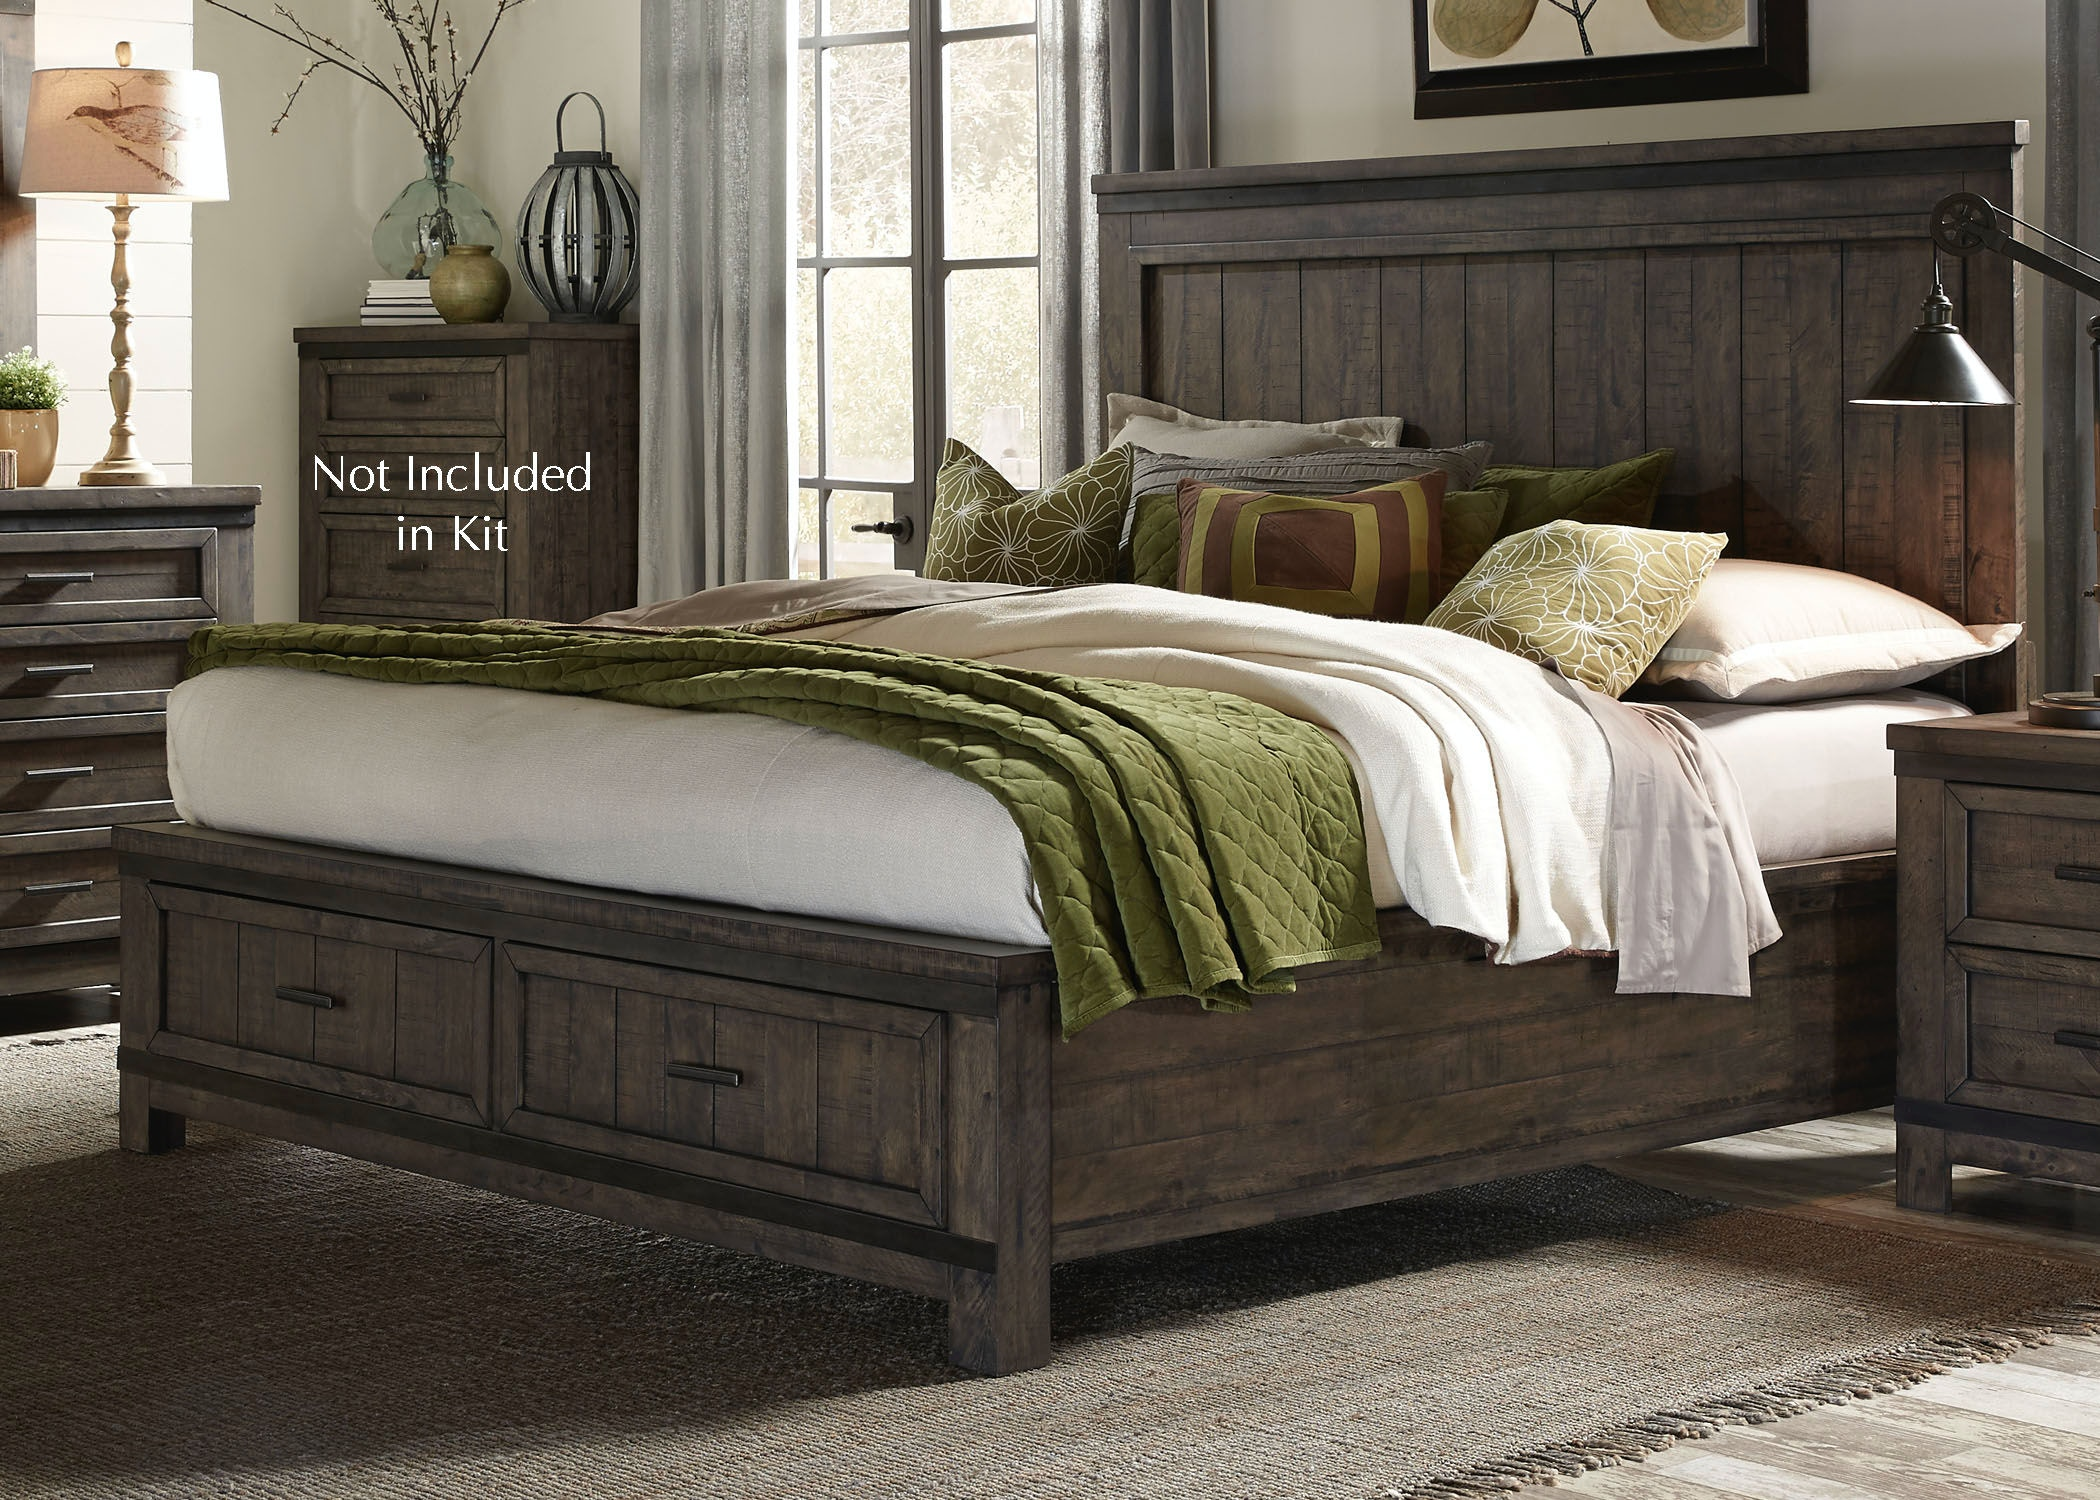 Superieur Liberty Furniture Bedroom King Storage Bed